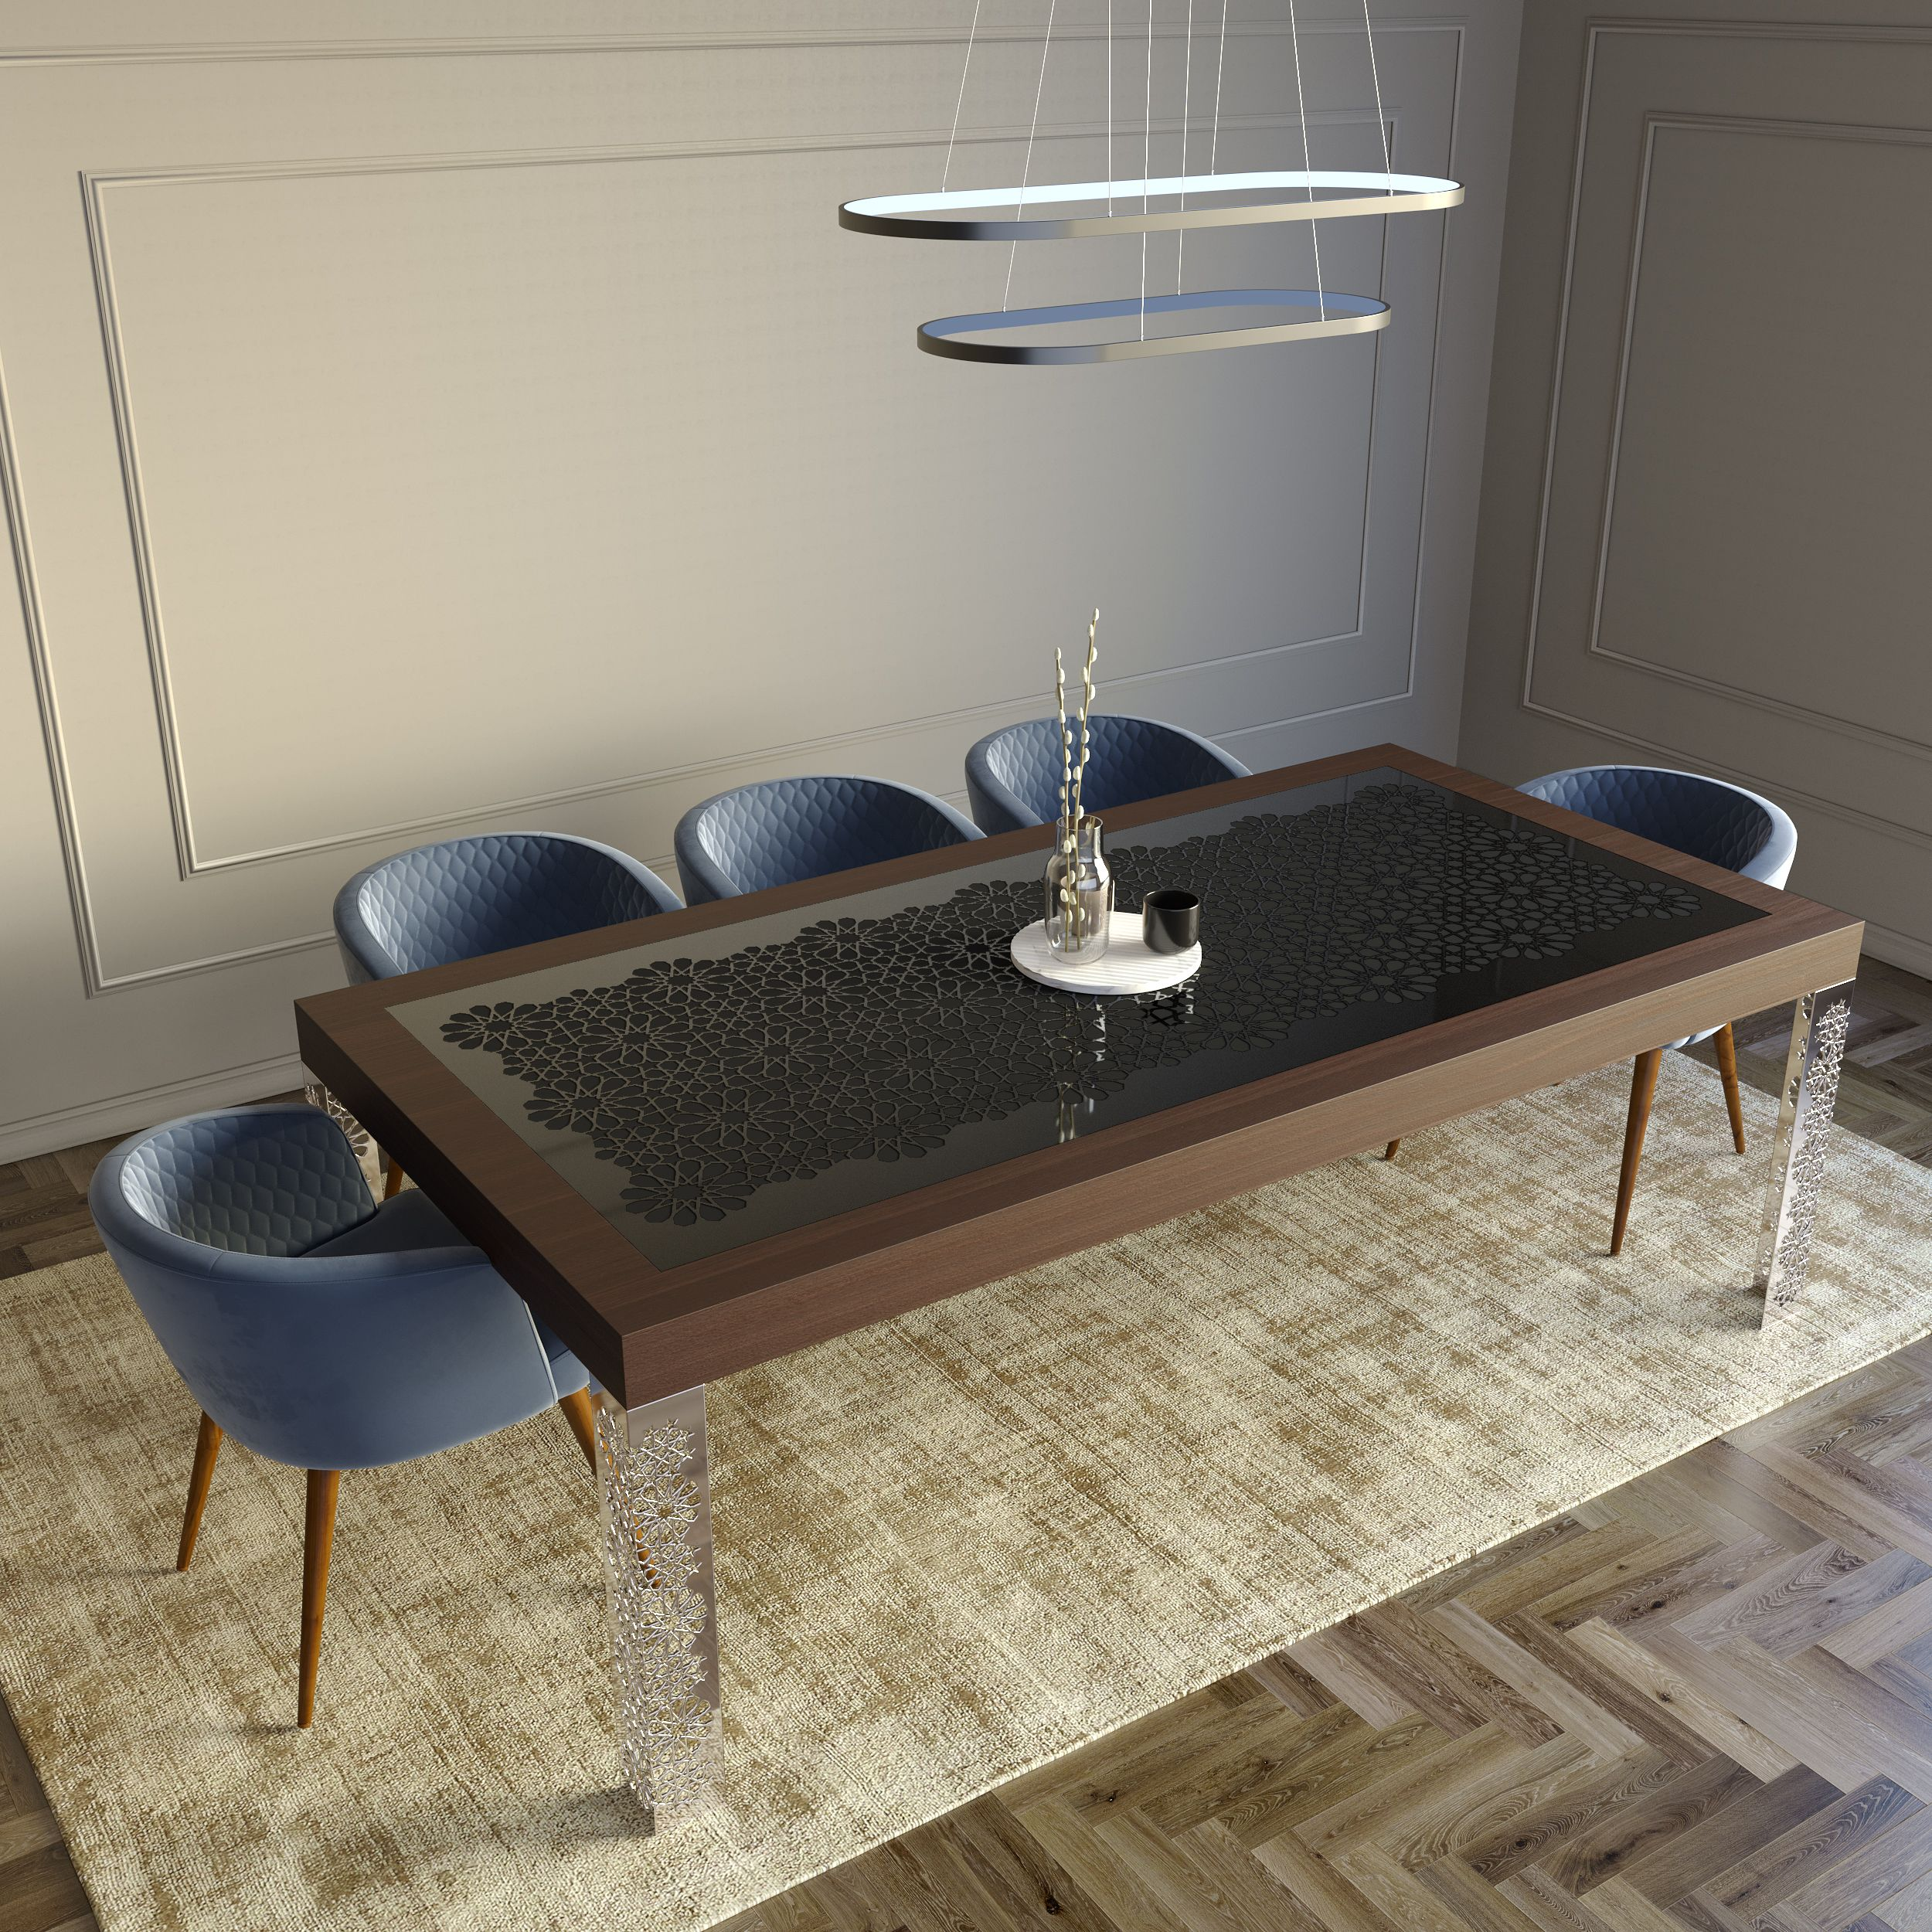 This dining table has five different patterns, two kinds of legs and tabletops, with a total of more than fifty different combinations. #diningtable #diningtabledecor #moderndiningtable #moderndiningtableluxury #furniture #luxuryfurniture #interiordesign #interiordecor #homedecor #decoration #designideas #diningroomideas #luxurydiningroom